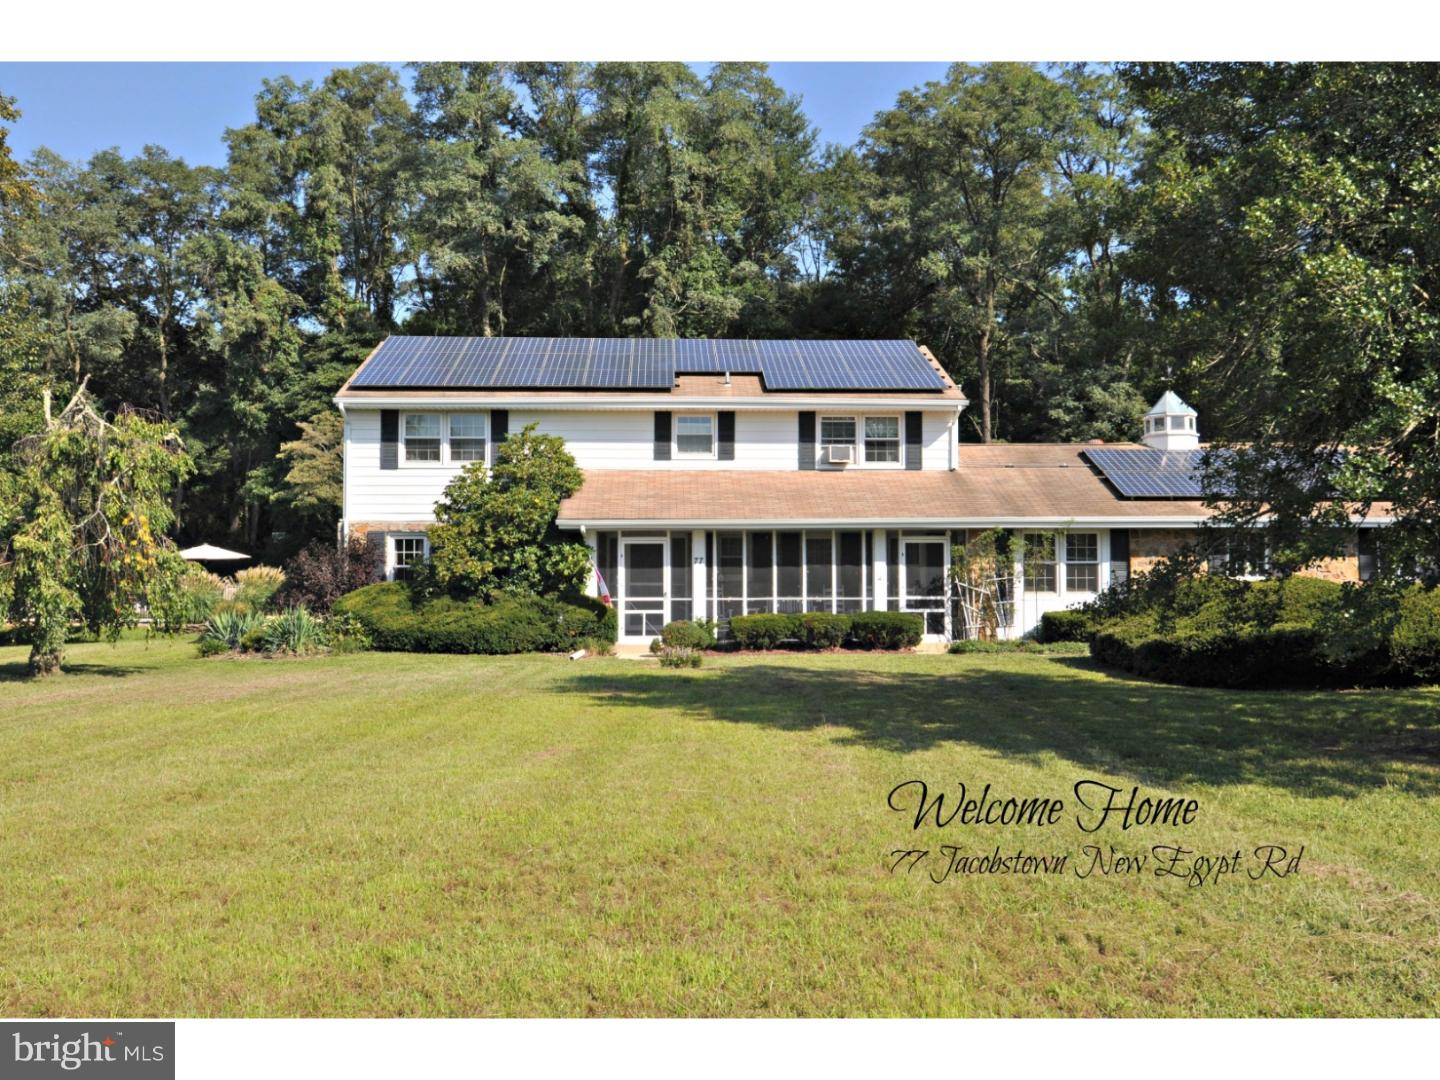 77 JACOBSTOWN NEW EGYPT ROAD, NORTH HANOVER TWP, NJ 08562